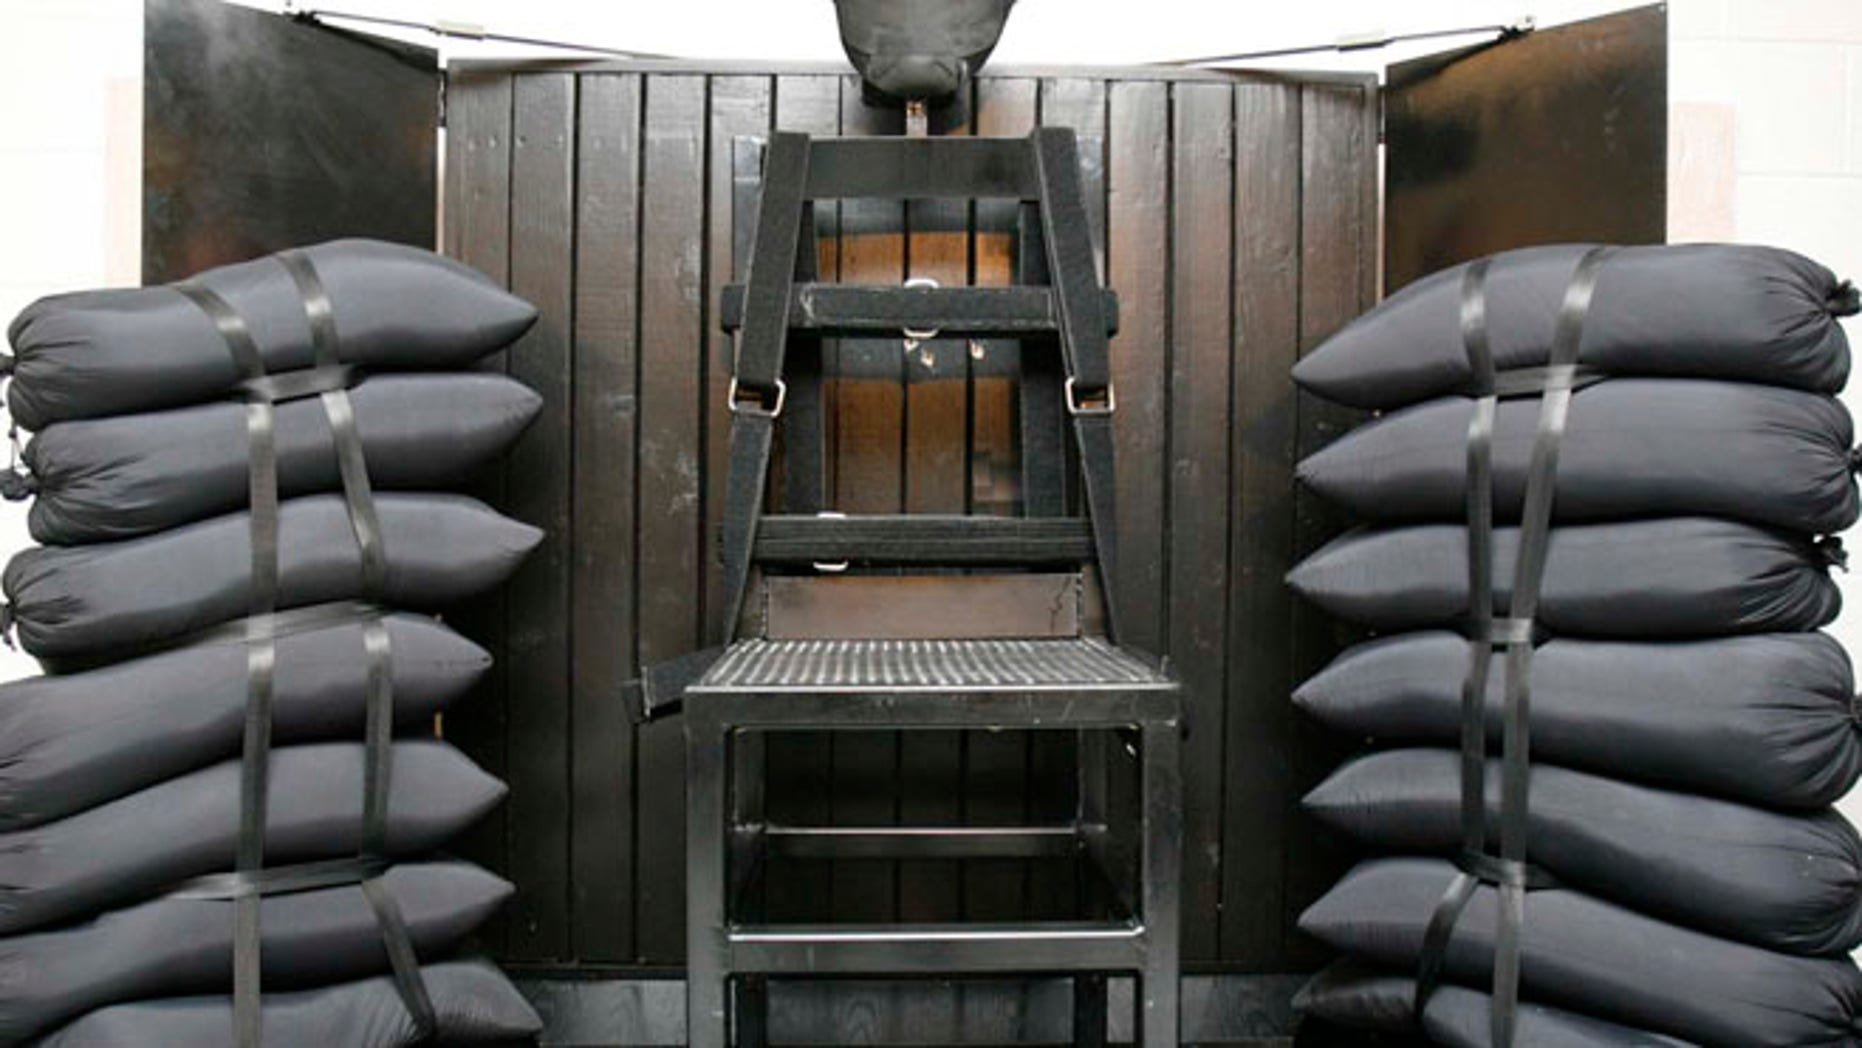 June 18, 2010: File photo shows the firing squad execution chamber at the Utah State Prison in Draper, Utah. (AP)